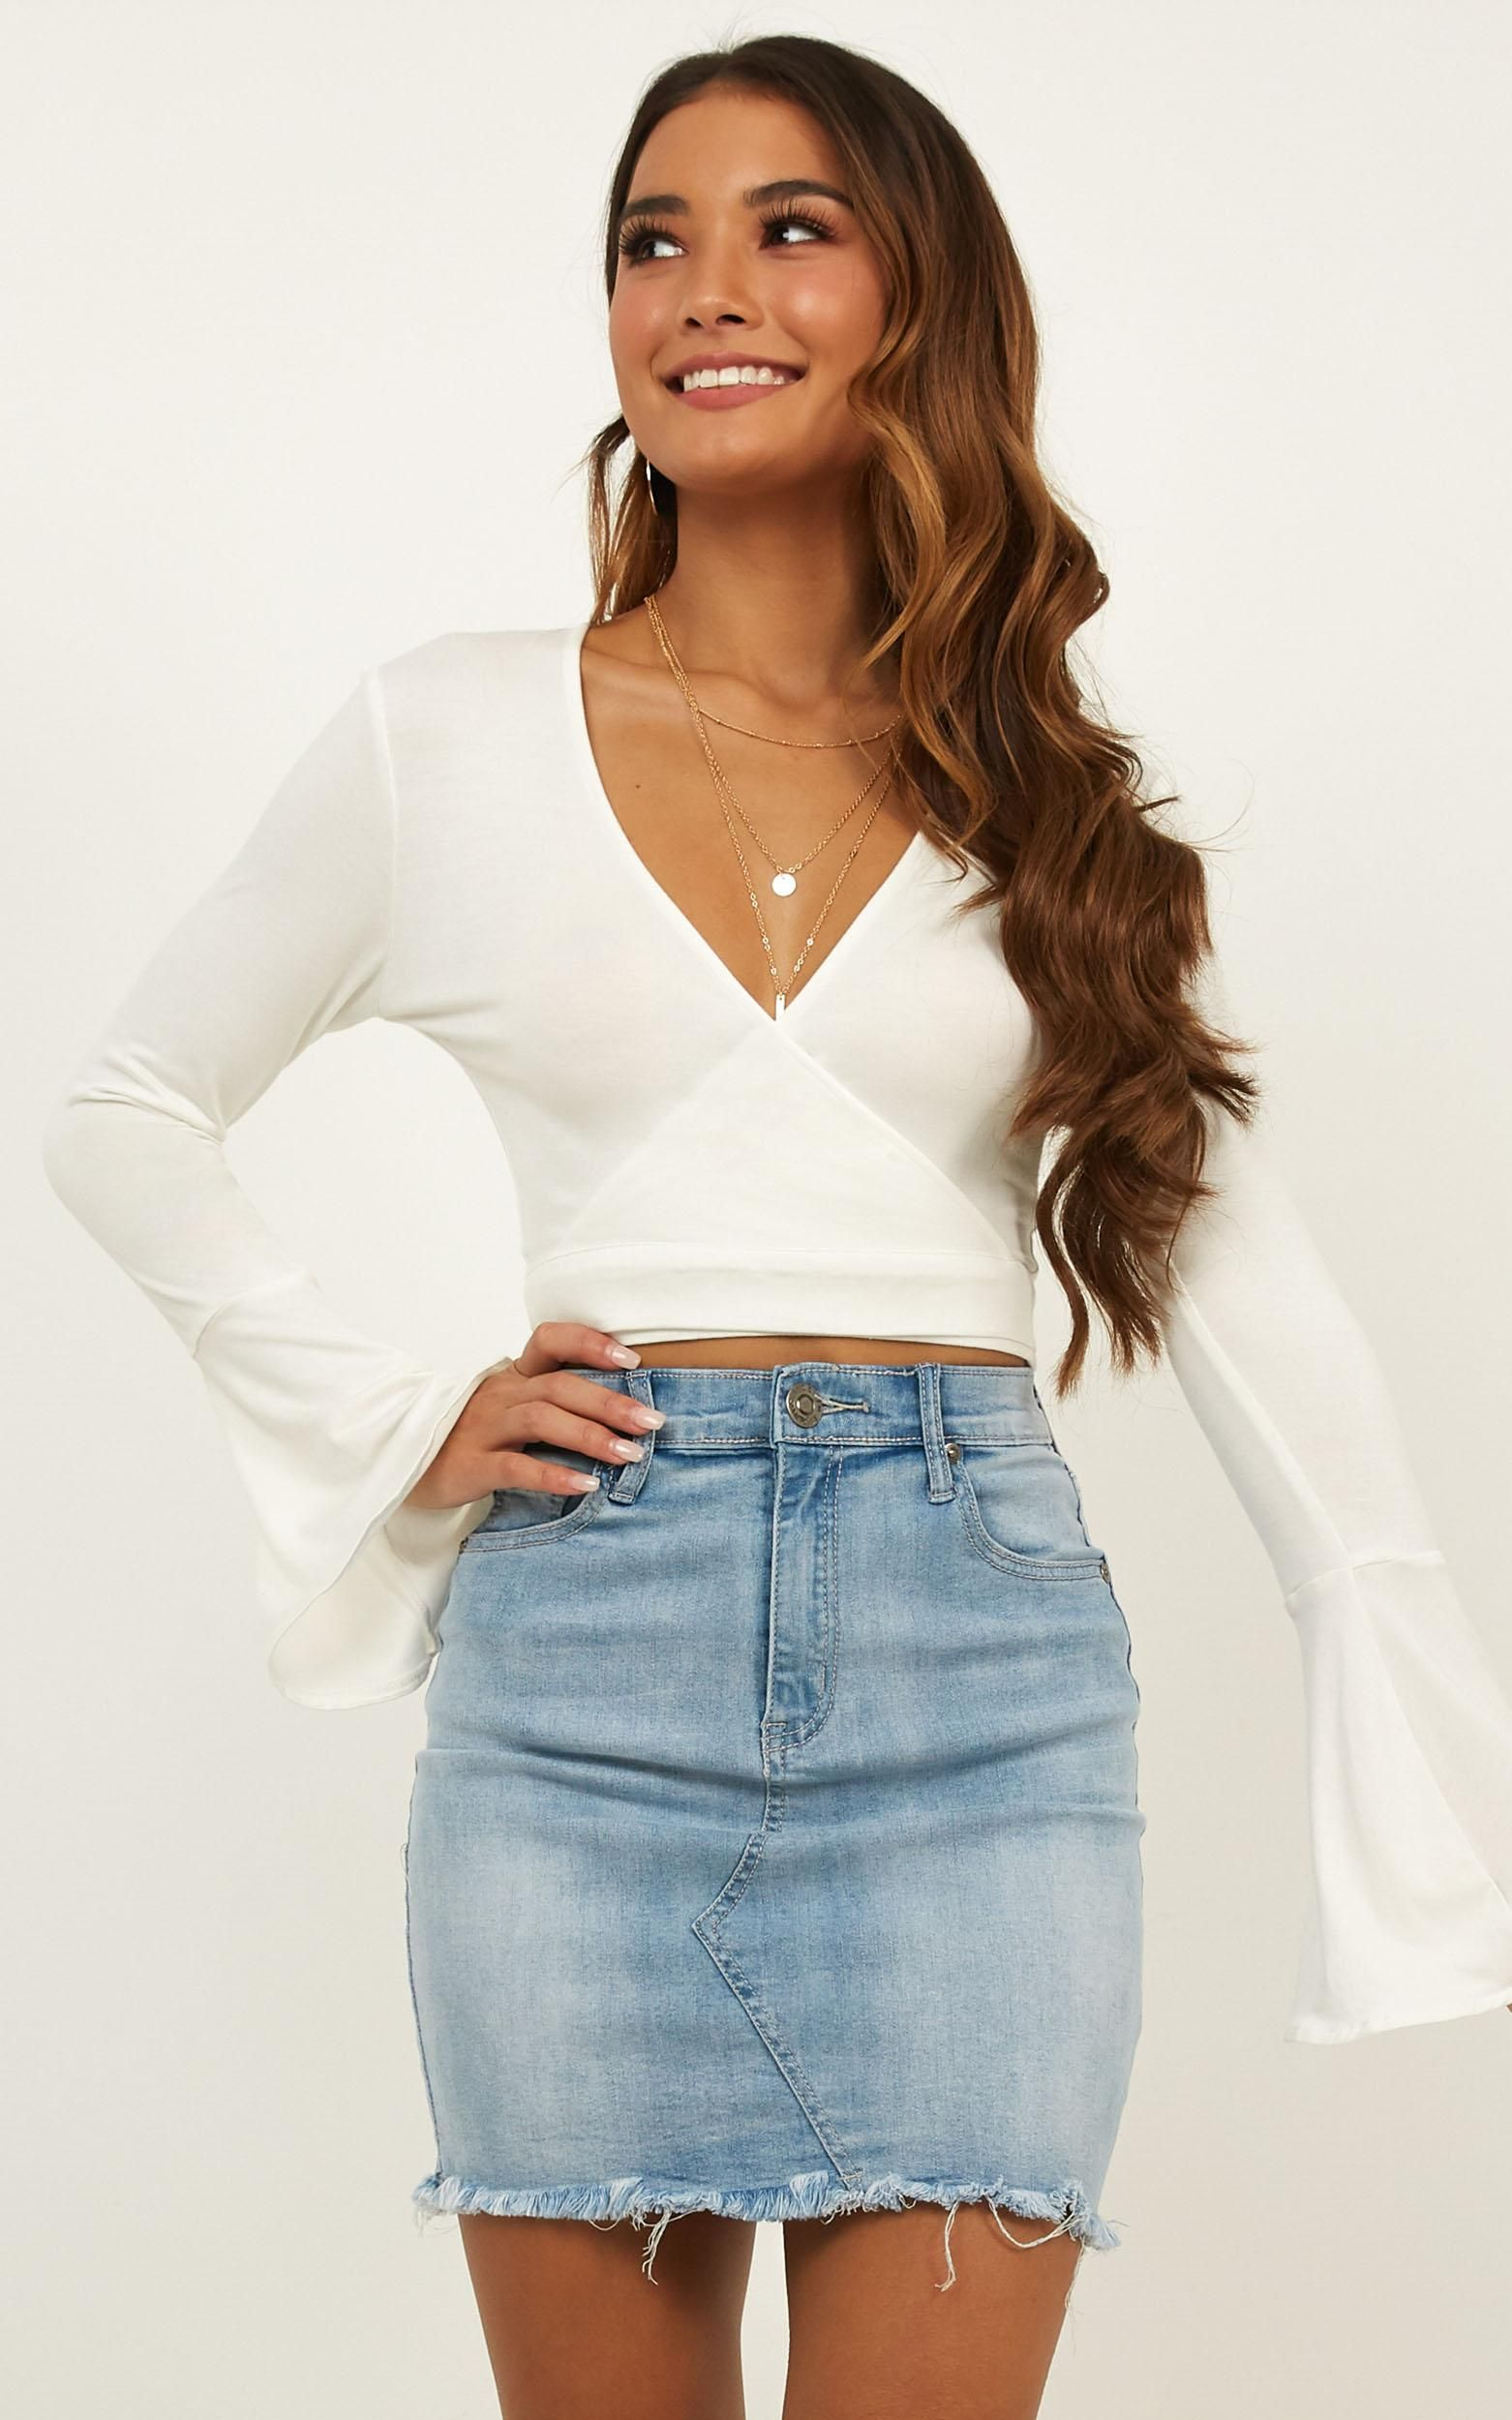 Sunday Drive Top In White Produced - Summer trends outfits, Fashion, Outfits, Summer outfits, Summer outfits women, White party outfit -  5ft 9in